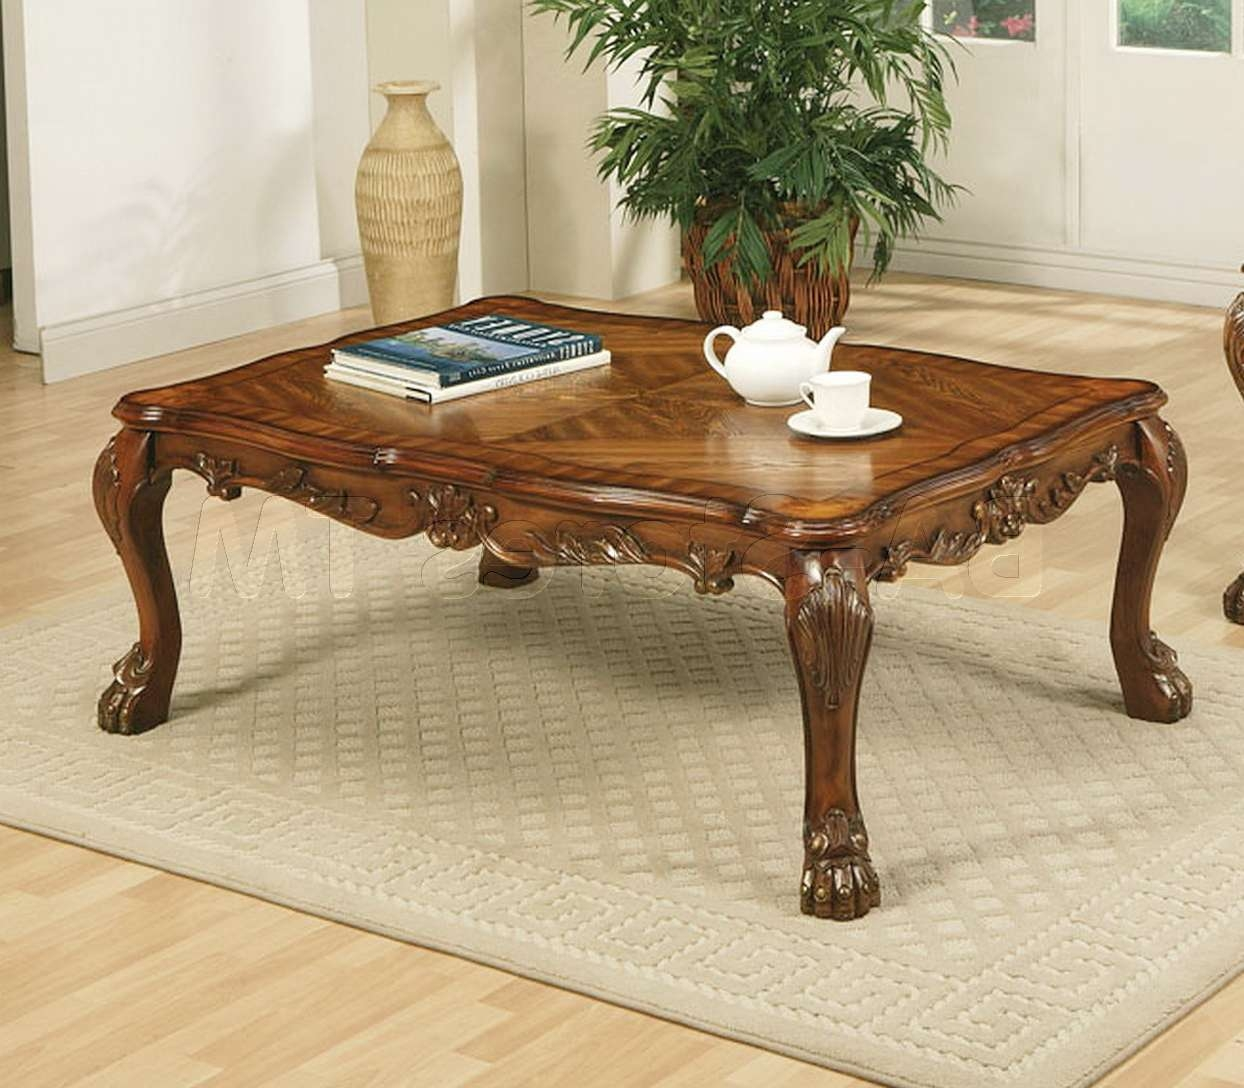 Latest Ethnic Coffee Tables Within Coffee Tables: Glass, Wooden Coffee Table, Free Shipping (View 12 of 20)